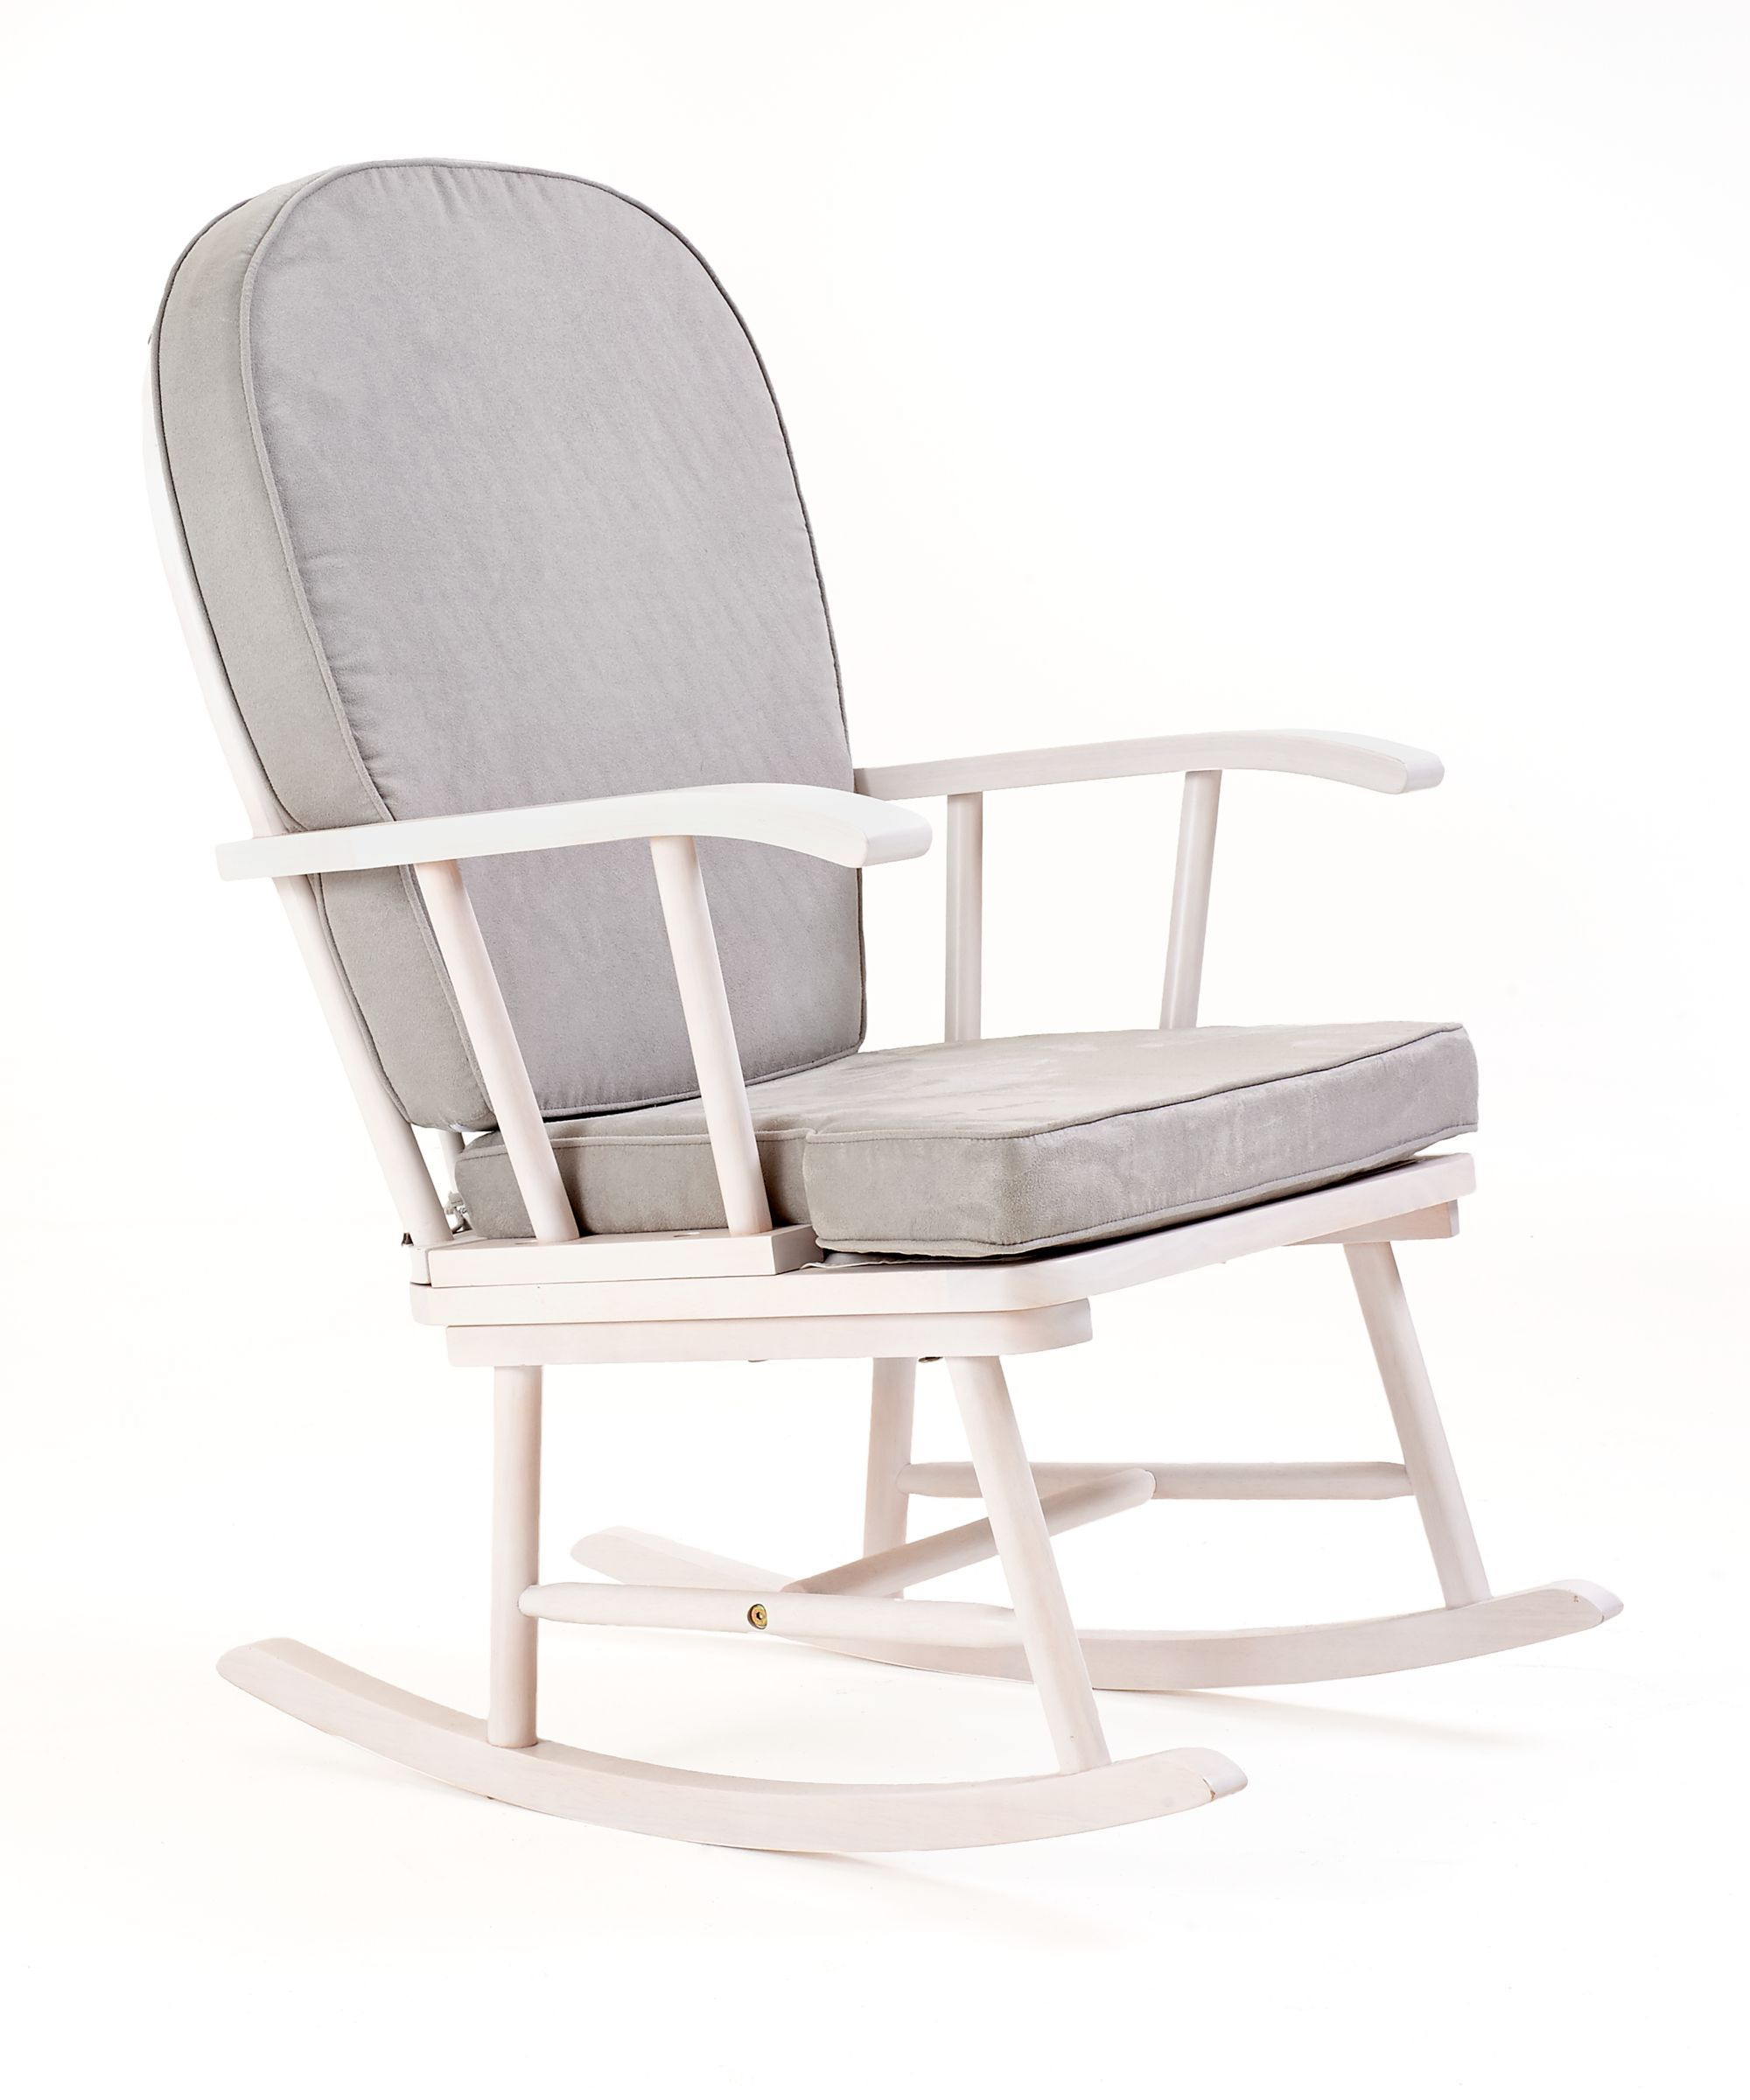 Mothercare rocking chair with grey cushion  white  Shh